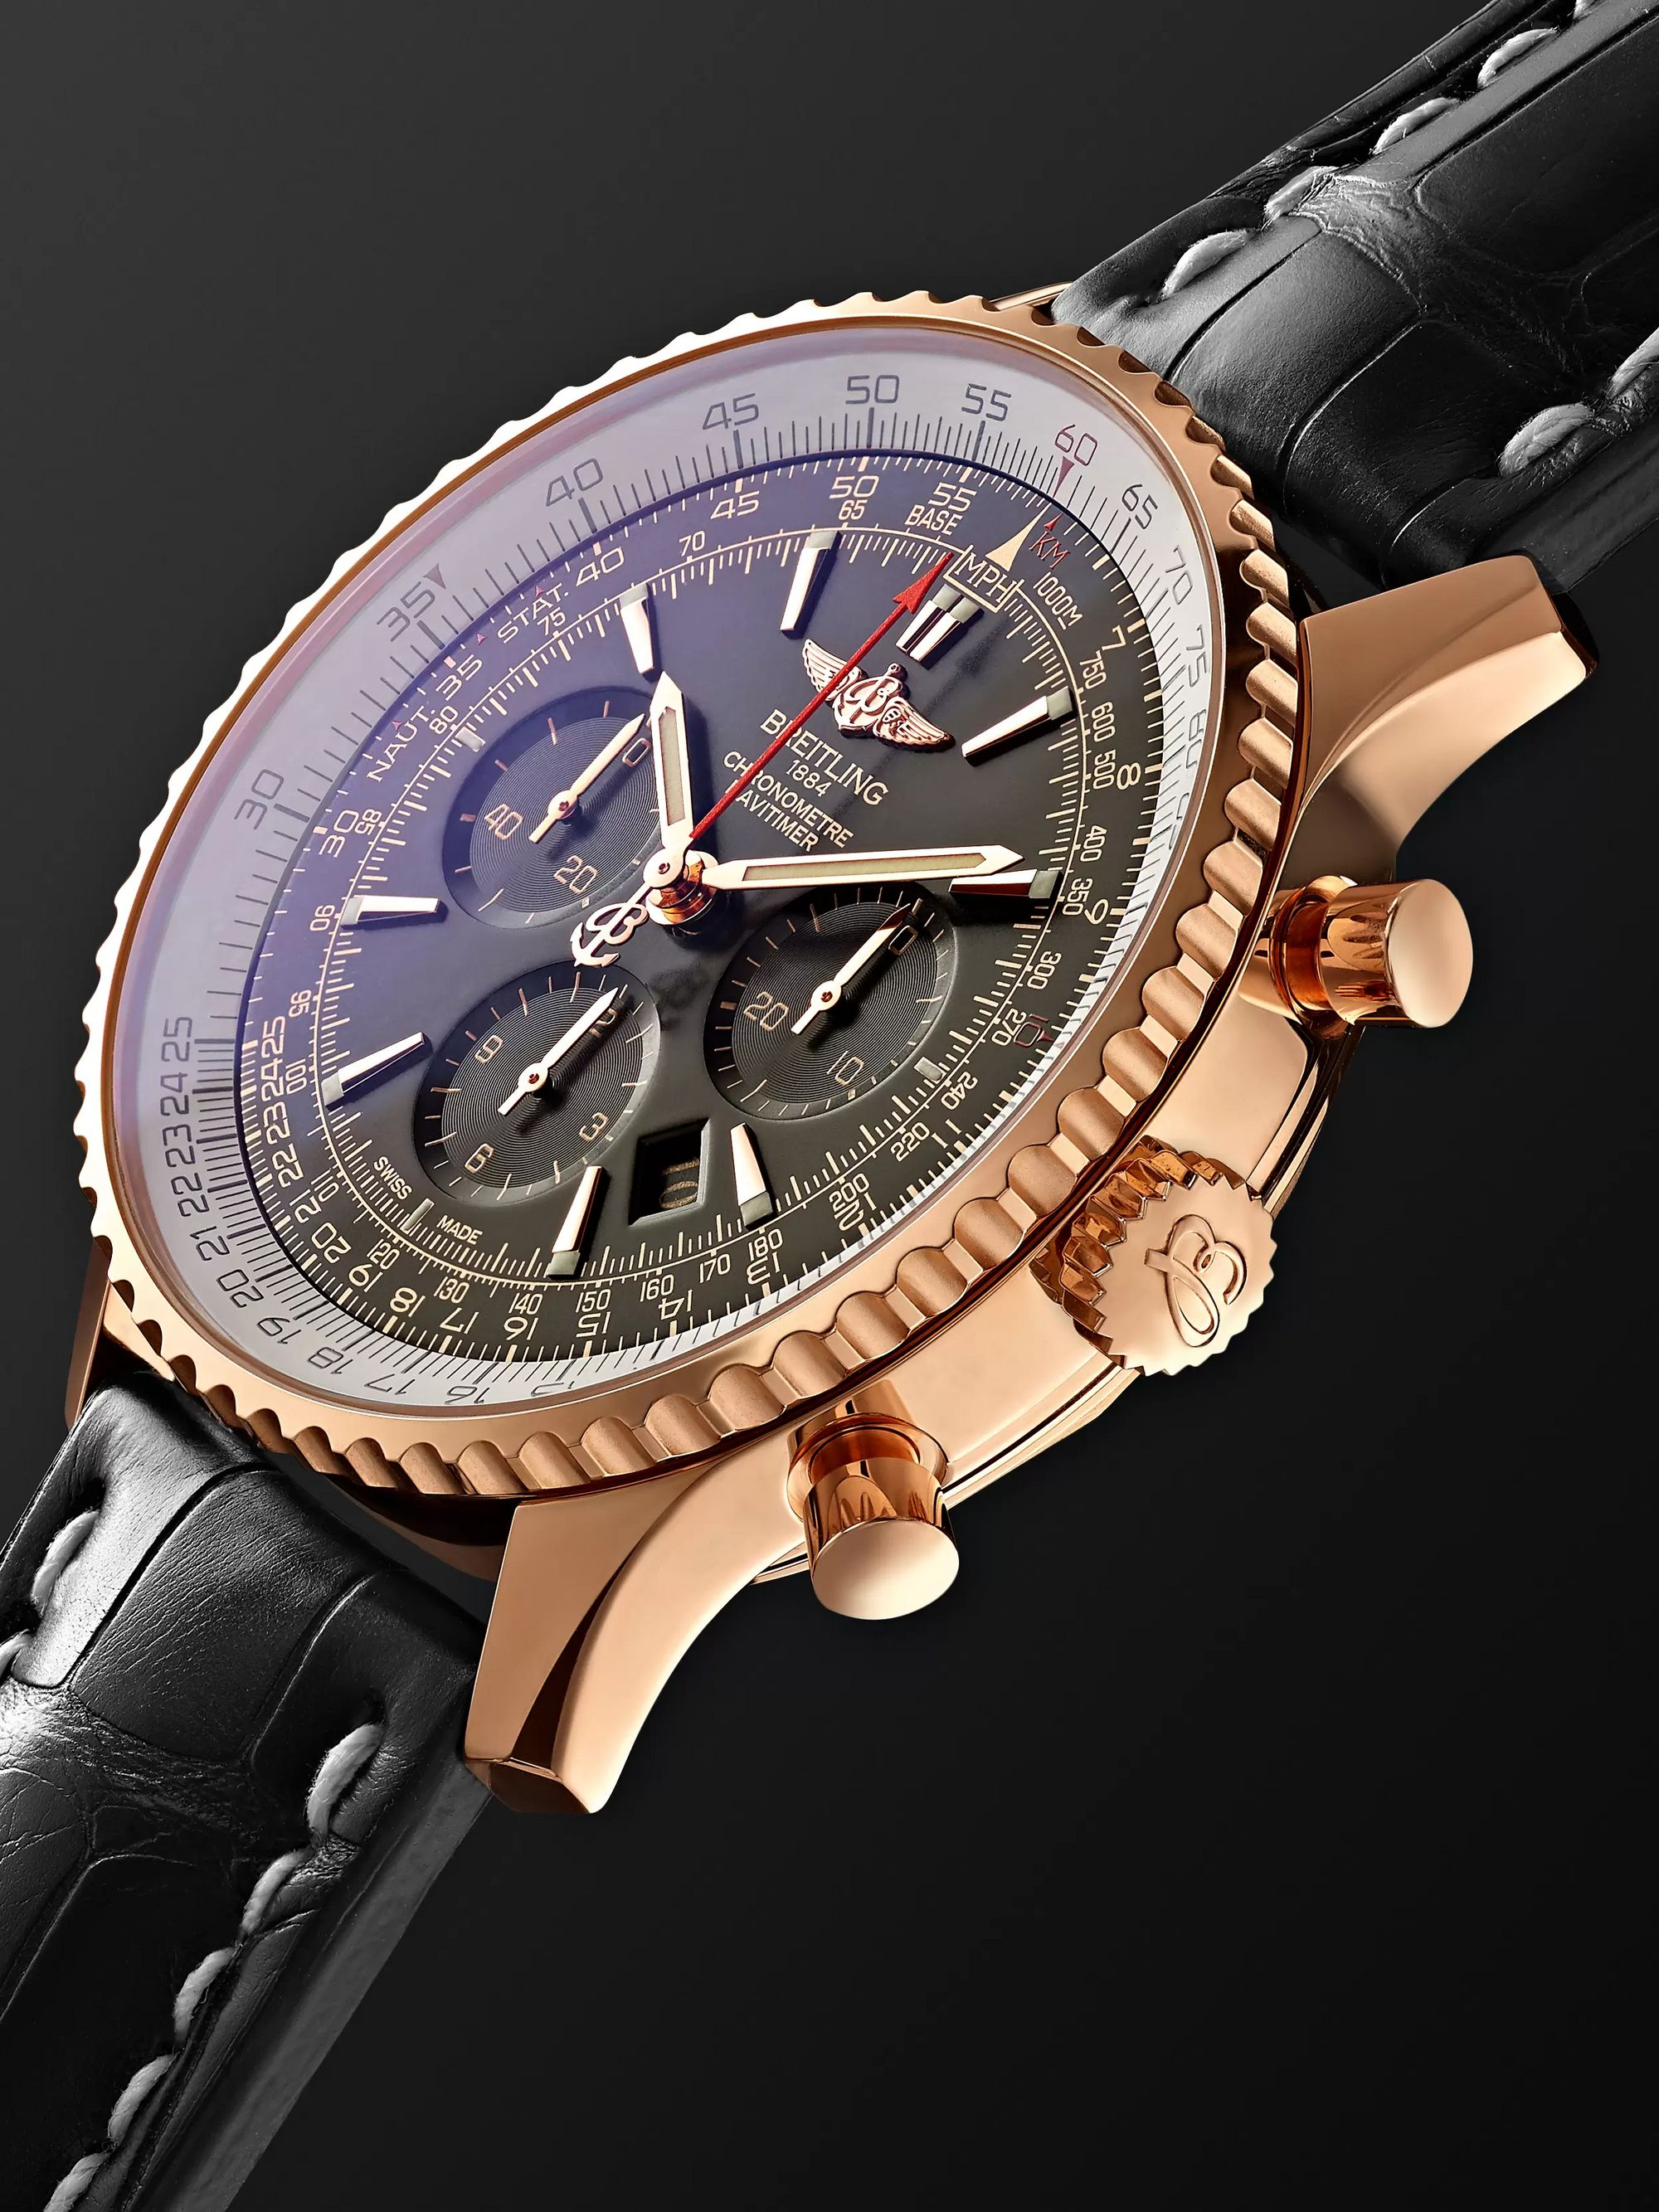 Breitling Navitimer 1 Chronometer 46mm 18-Karat Red Gold and Crocodile Watch, Ref. No. RB0127E6/BF16/760P/R20BA.1